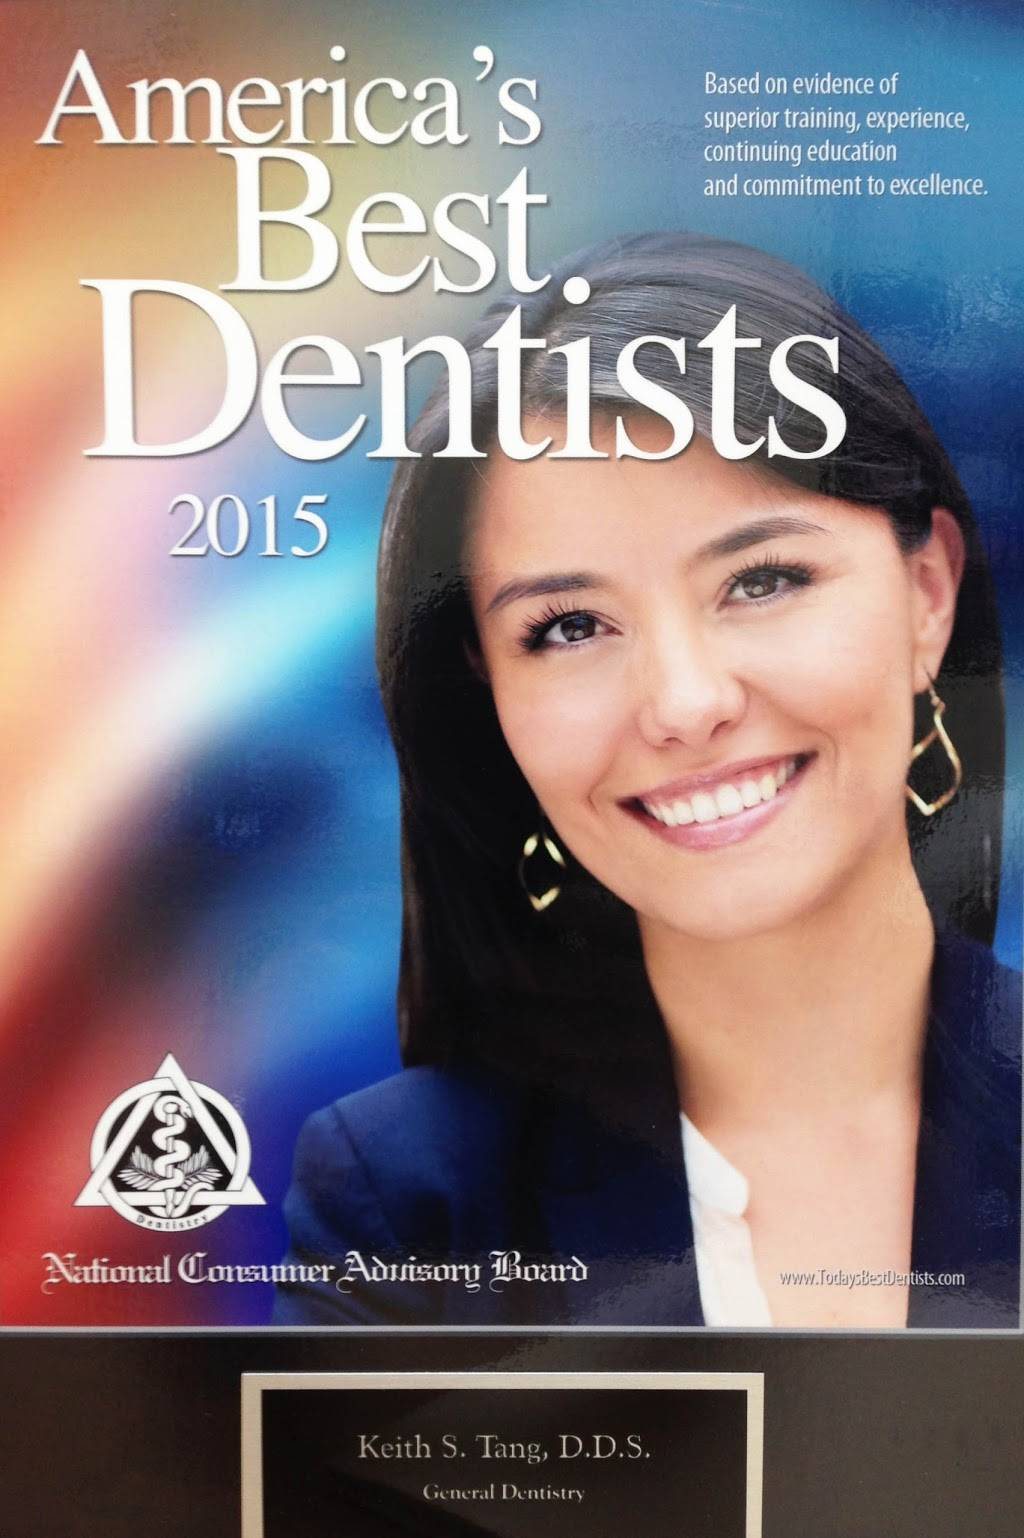 Westpark Dental - Dr. Keith S. Tang, DDS - dentist  | Photo 10 of 10 | Address: 3785 Alton Pkwy, Irvine, CA 92606, USA | Phone: (949) 252-1889